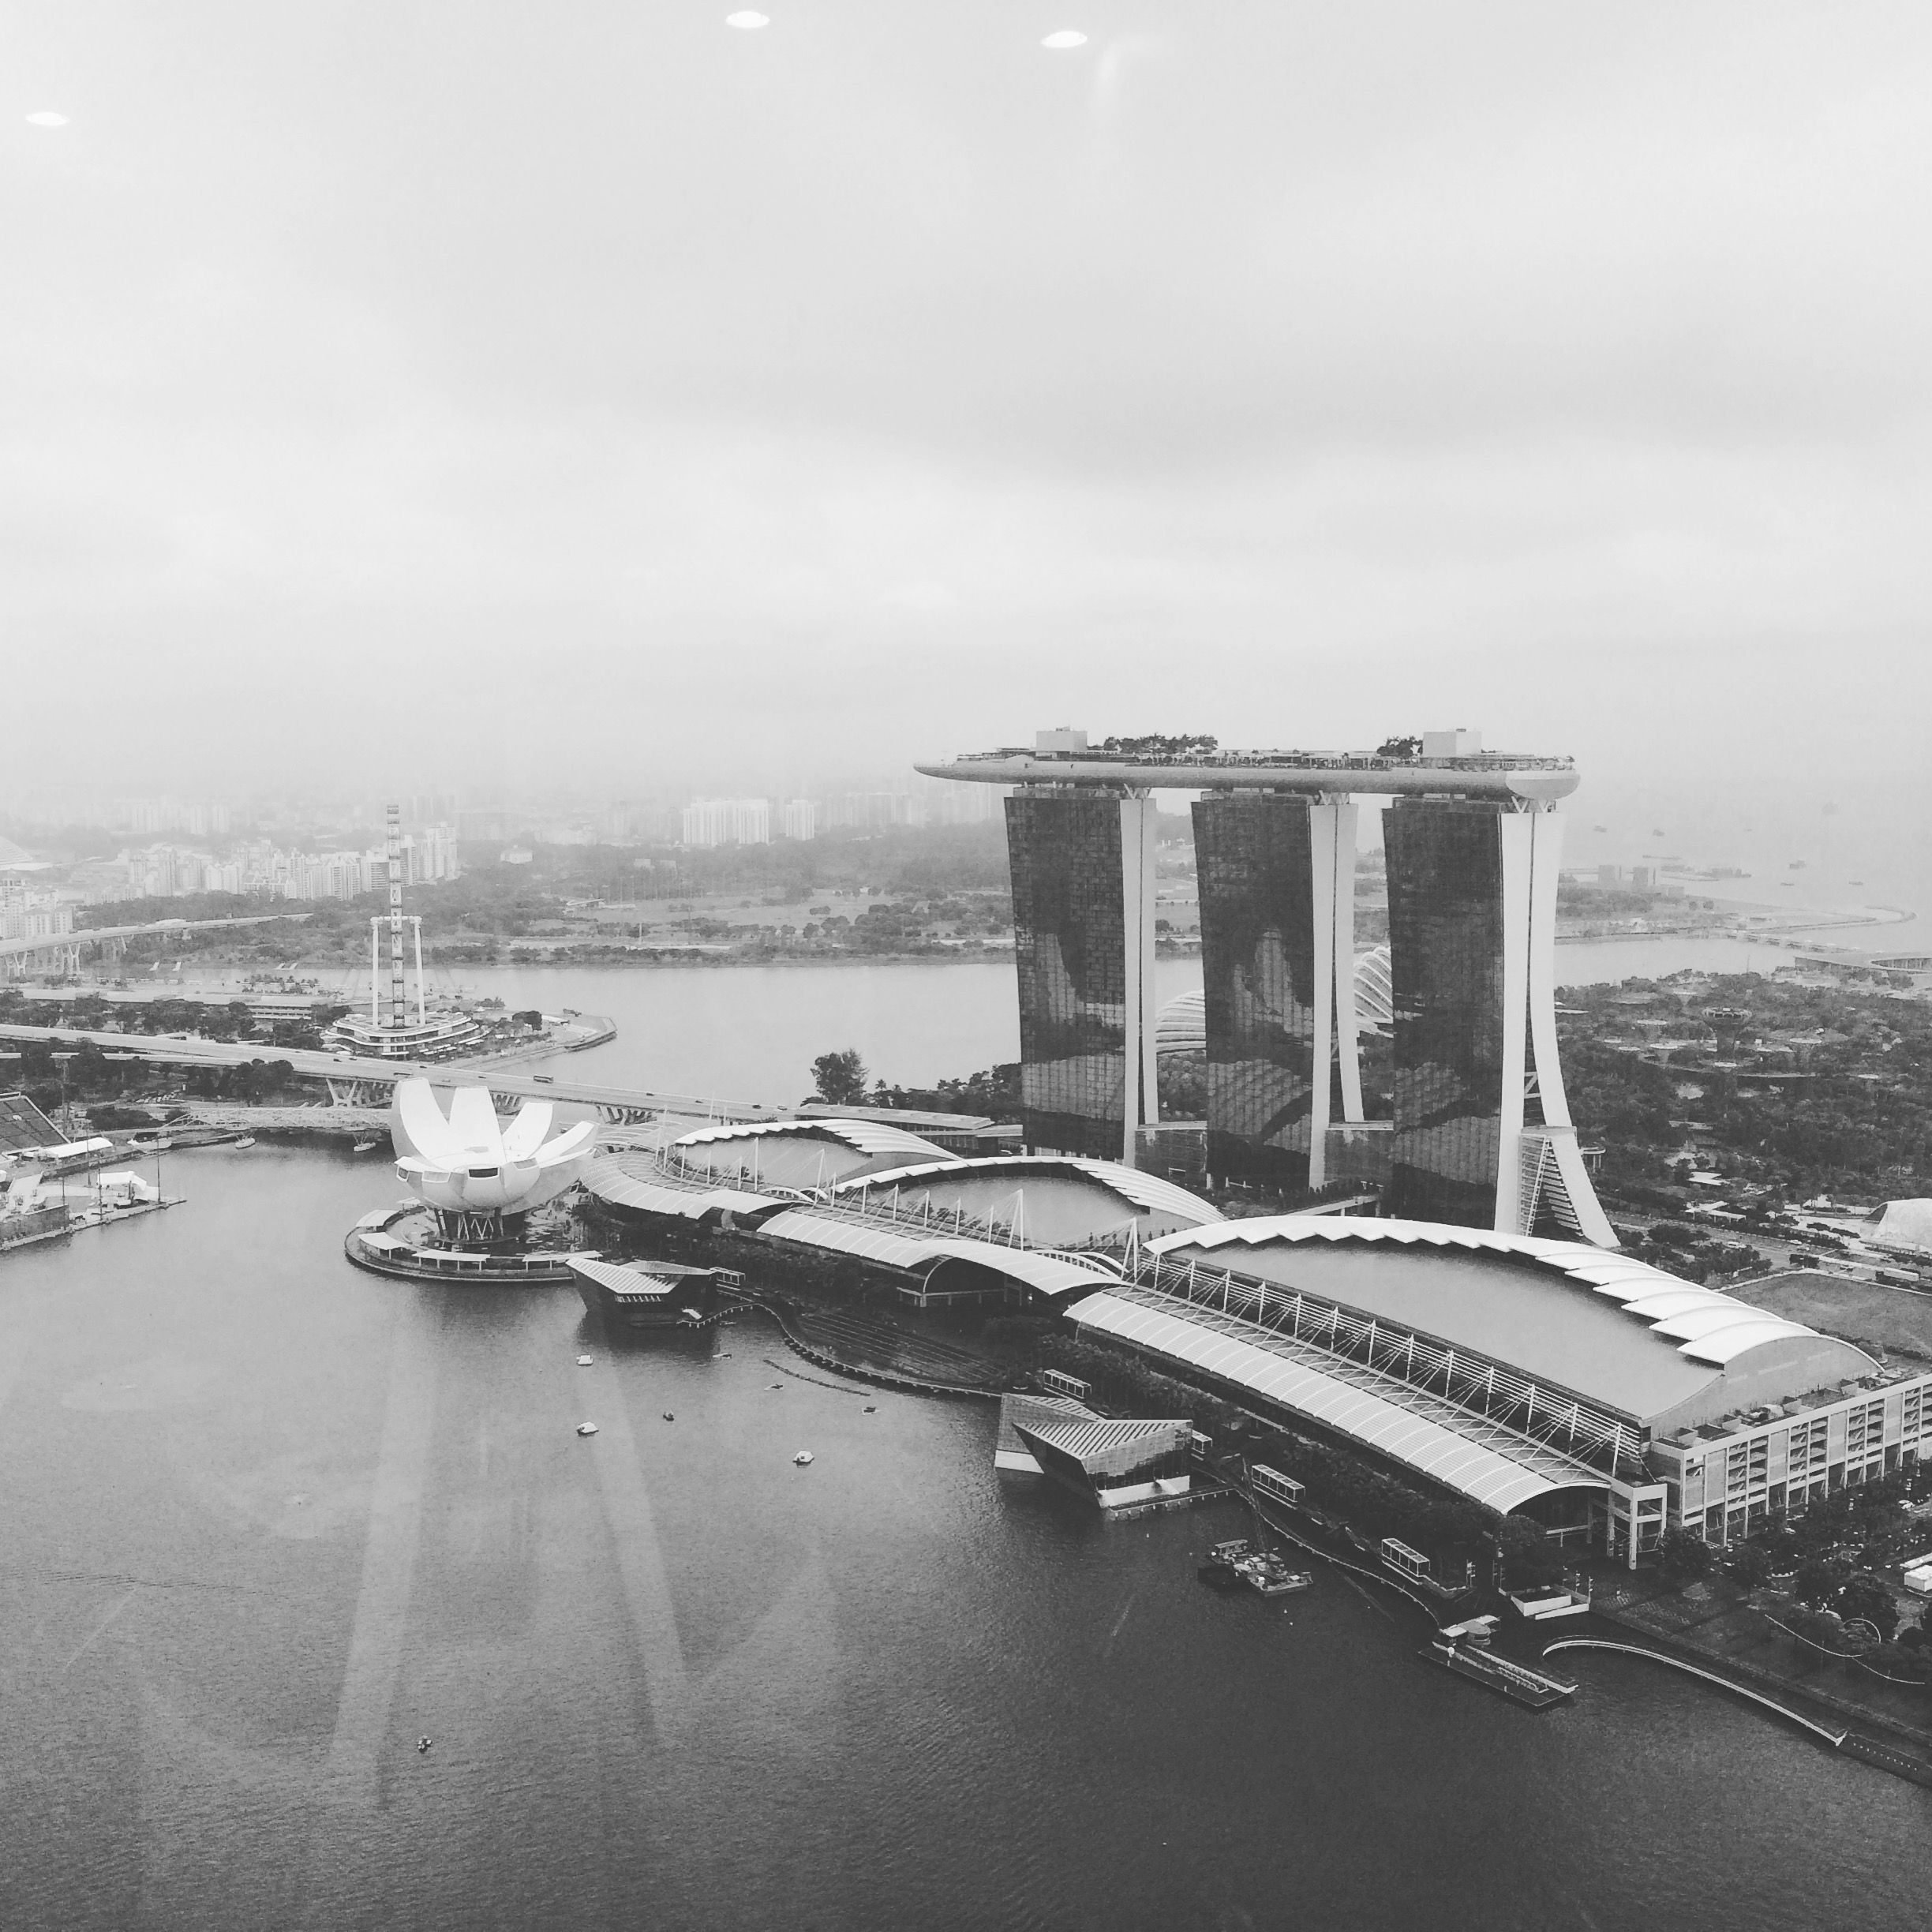 A beautiful city to visit for food, vista, shopping and relaxing#Singapore#Marina#awesome